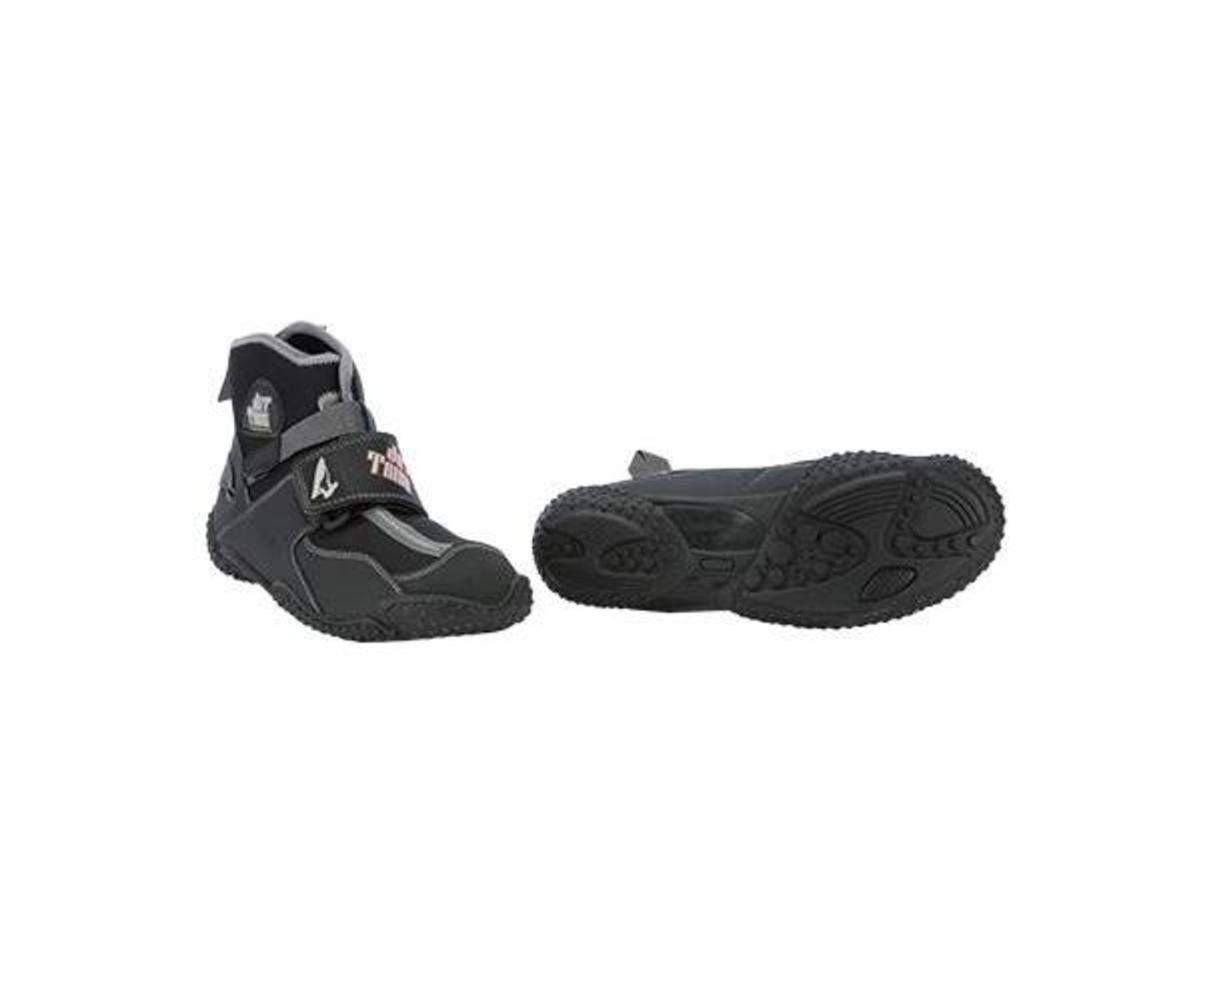 JETTRIBE D-RIDE BOOTS JTG 15492 SIZE 12 by Jettribe   B01E9MS9BG